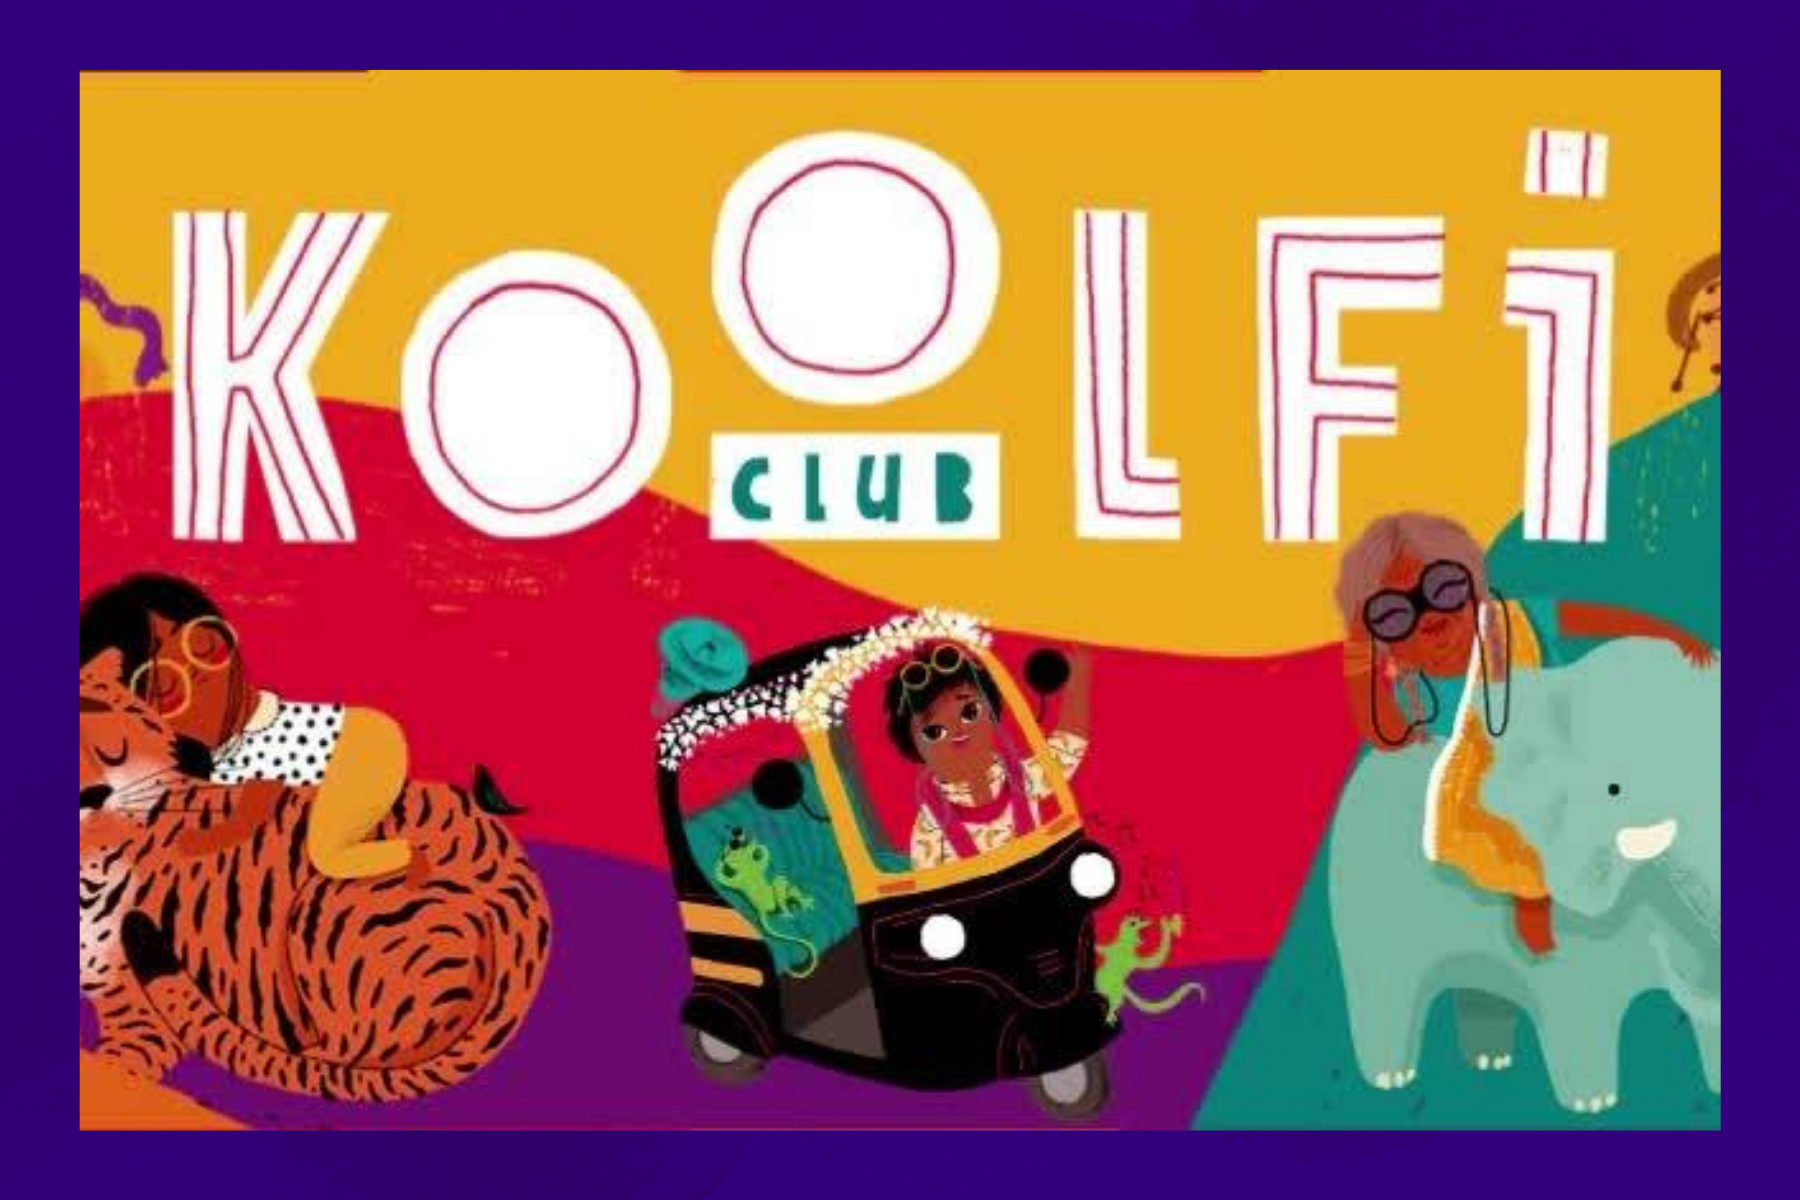 Koolfi Club